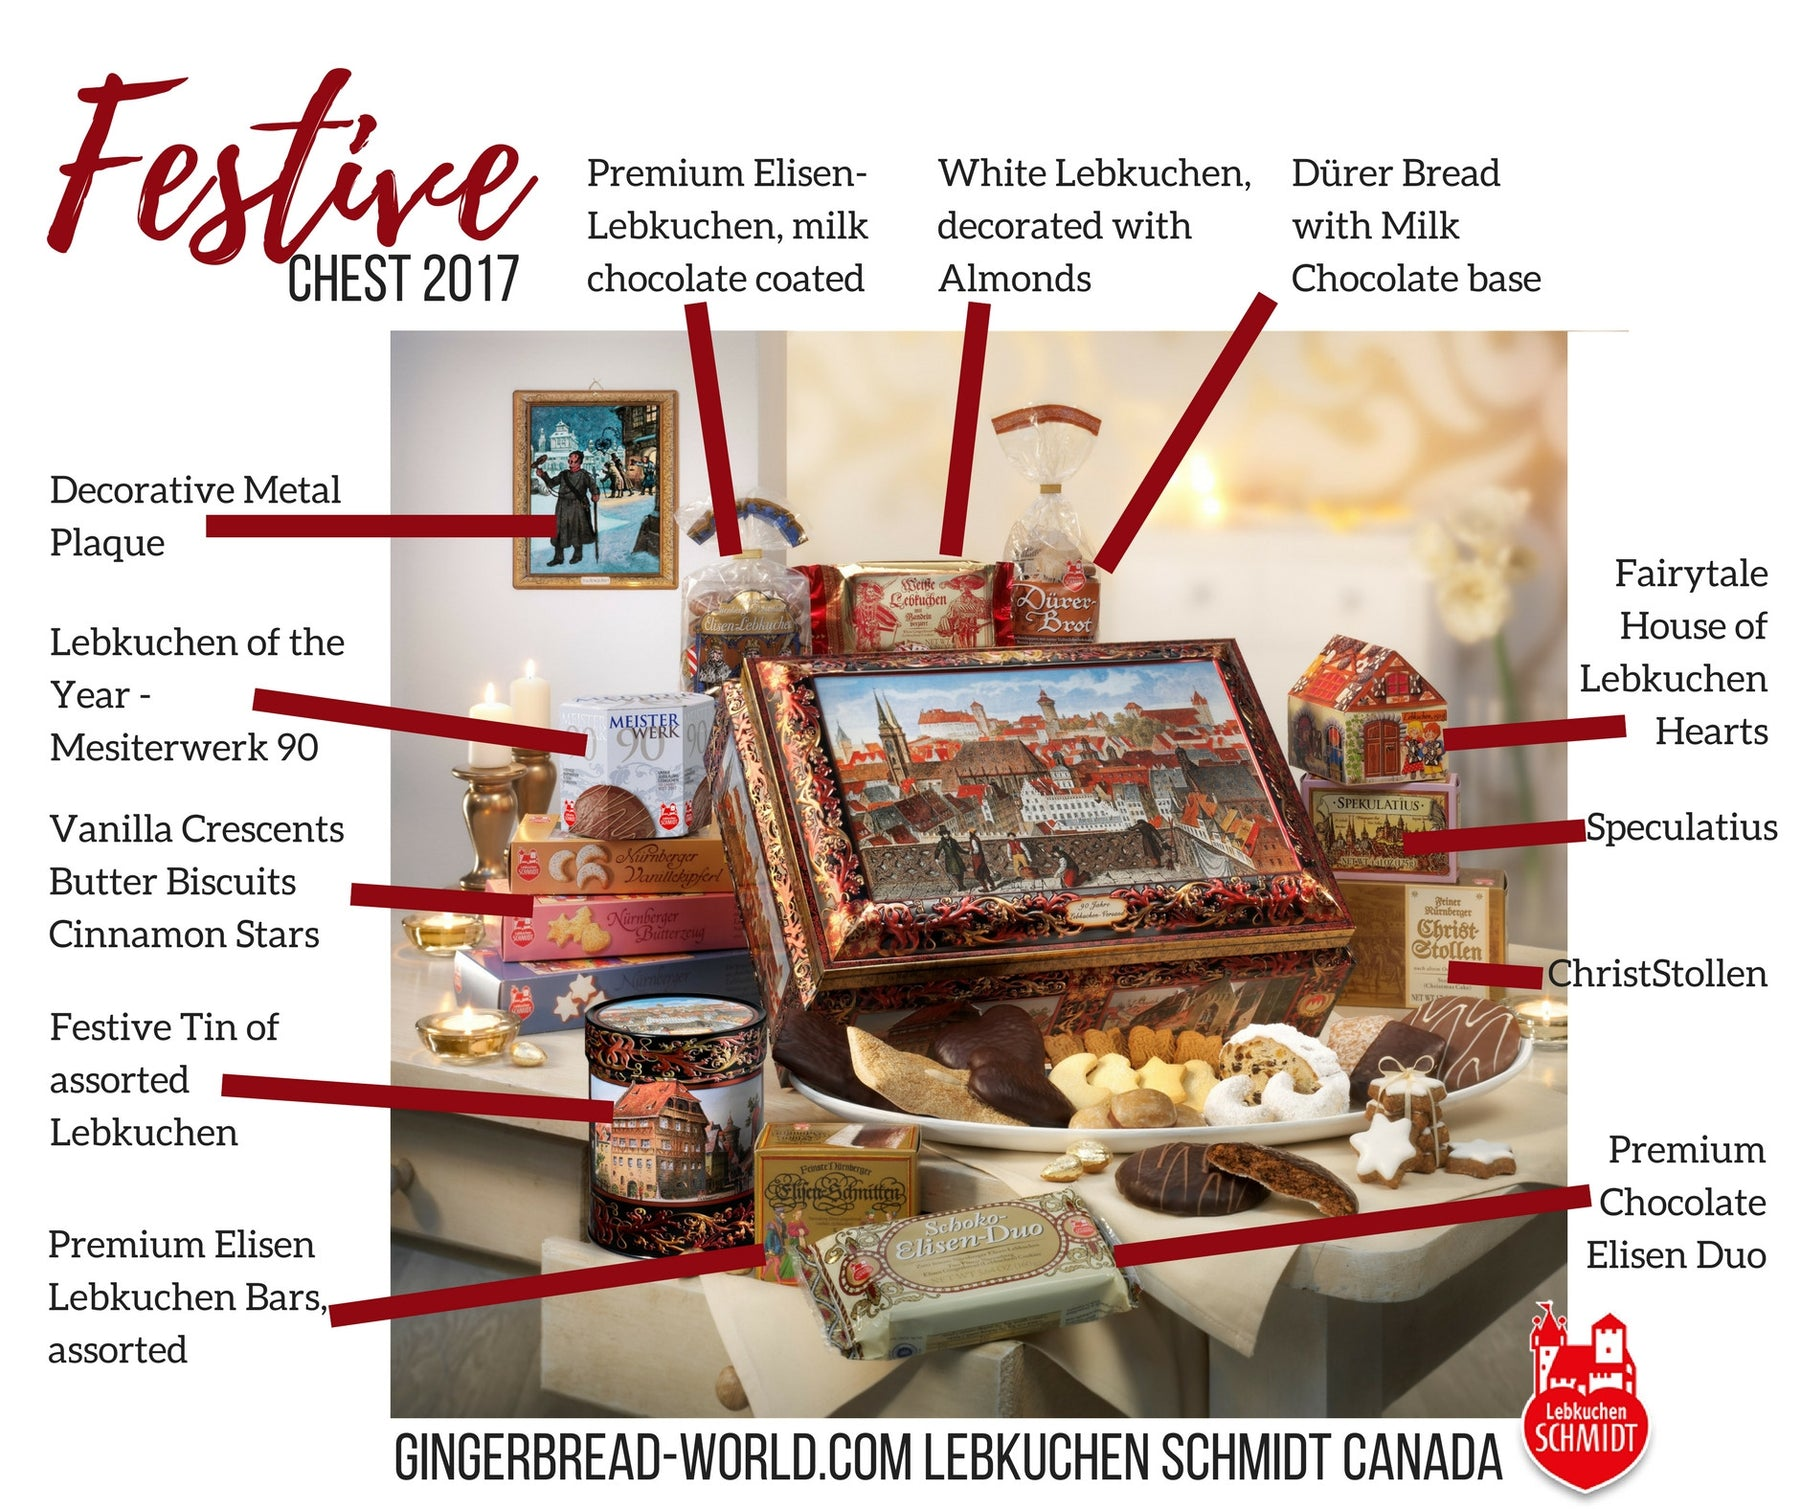 The Christmas Lebkuchen Treasures Inside the Festive Chest 2017